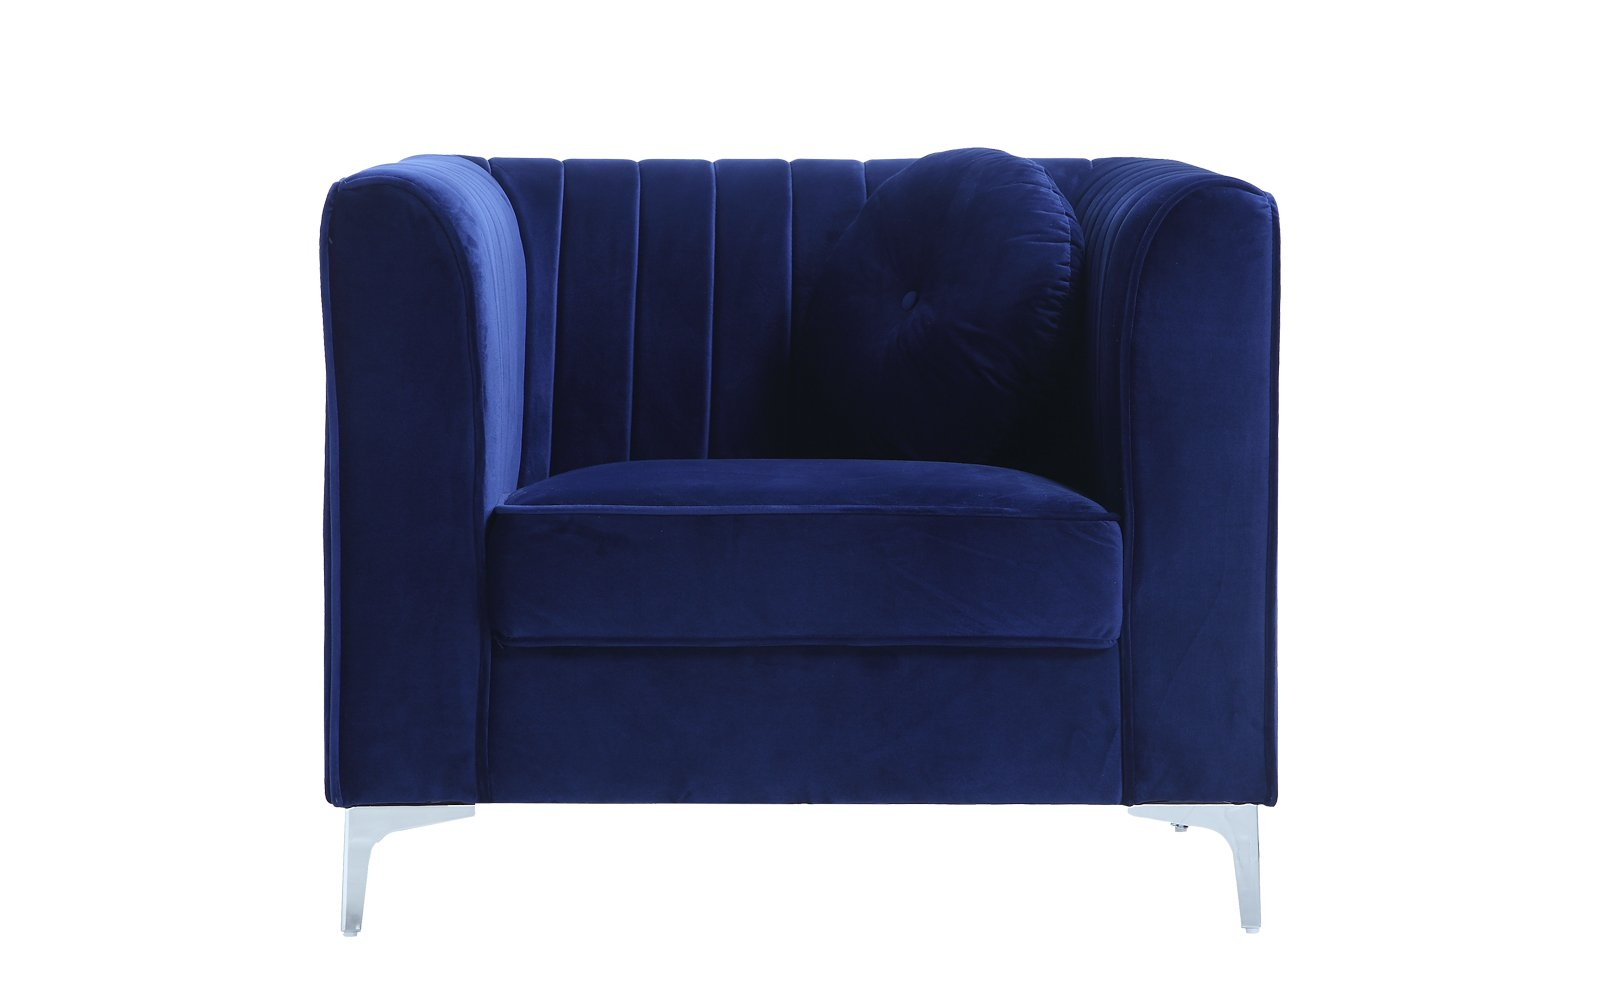 Classic and Traditional Living Room Marilyn Velvet Armchair, Club Chair with Tufted Accent Pillows (Blue) - Traditional club style velvet living room armchair / club chair with pleated details, legs, and 1 round accent pillow Upholstered in hand picked soft velvet fabric in bright pop colors to make a statement in your home and bring a touch of modernism The pleated back details provides a simplistic and the tufted accent pillows bring a subtle touch of sophistication to this chair - living-room-furniture, living-room, accent-chairs - 61hMDnIgYkL -